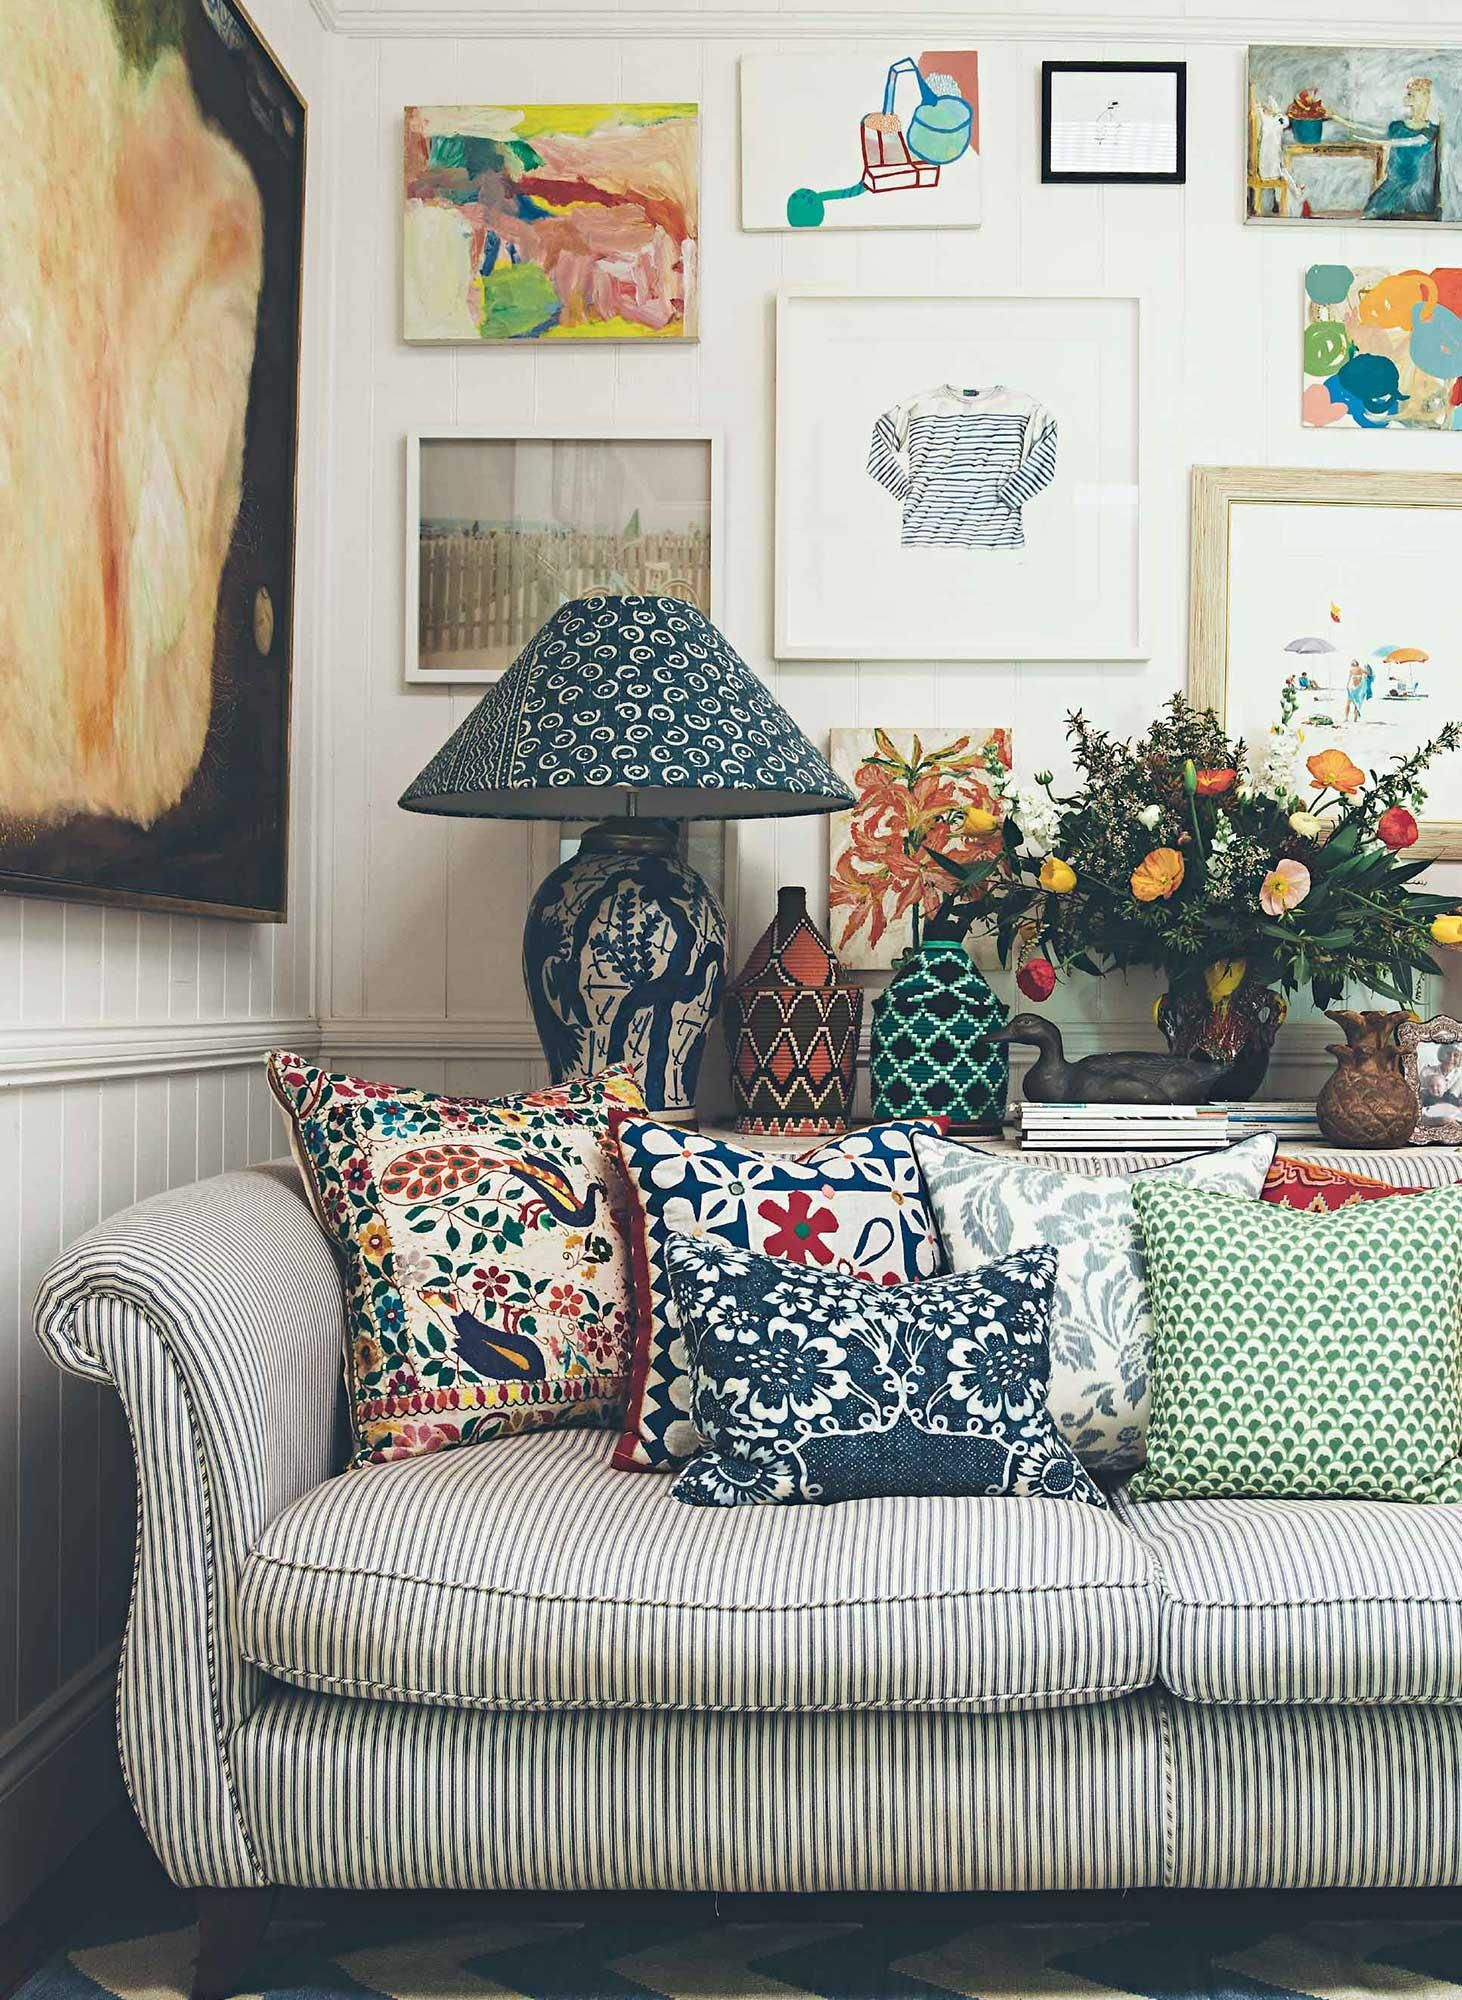 Living Room Mismatched Interesting Cushions Wall Art Couch3 Anna Spiro